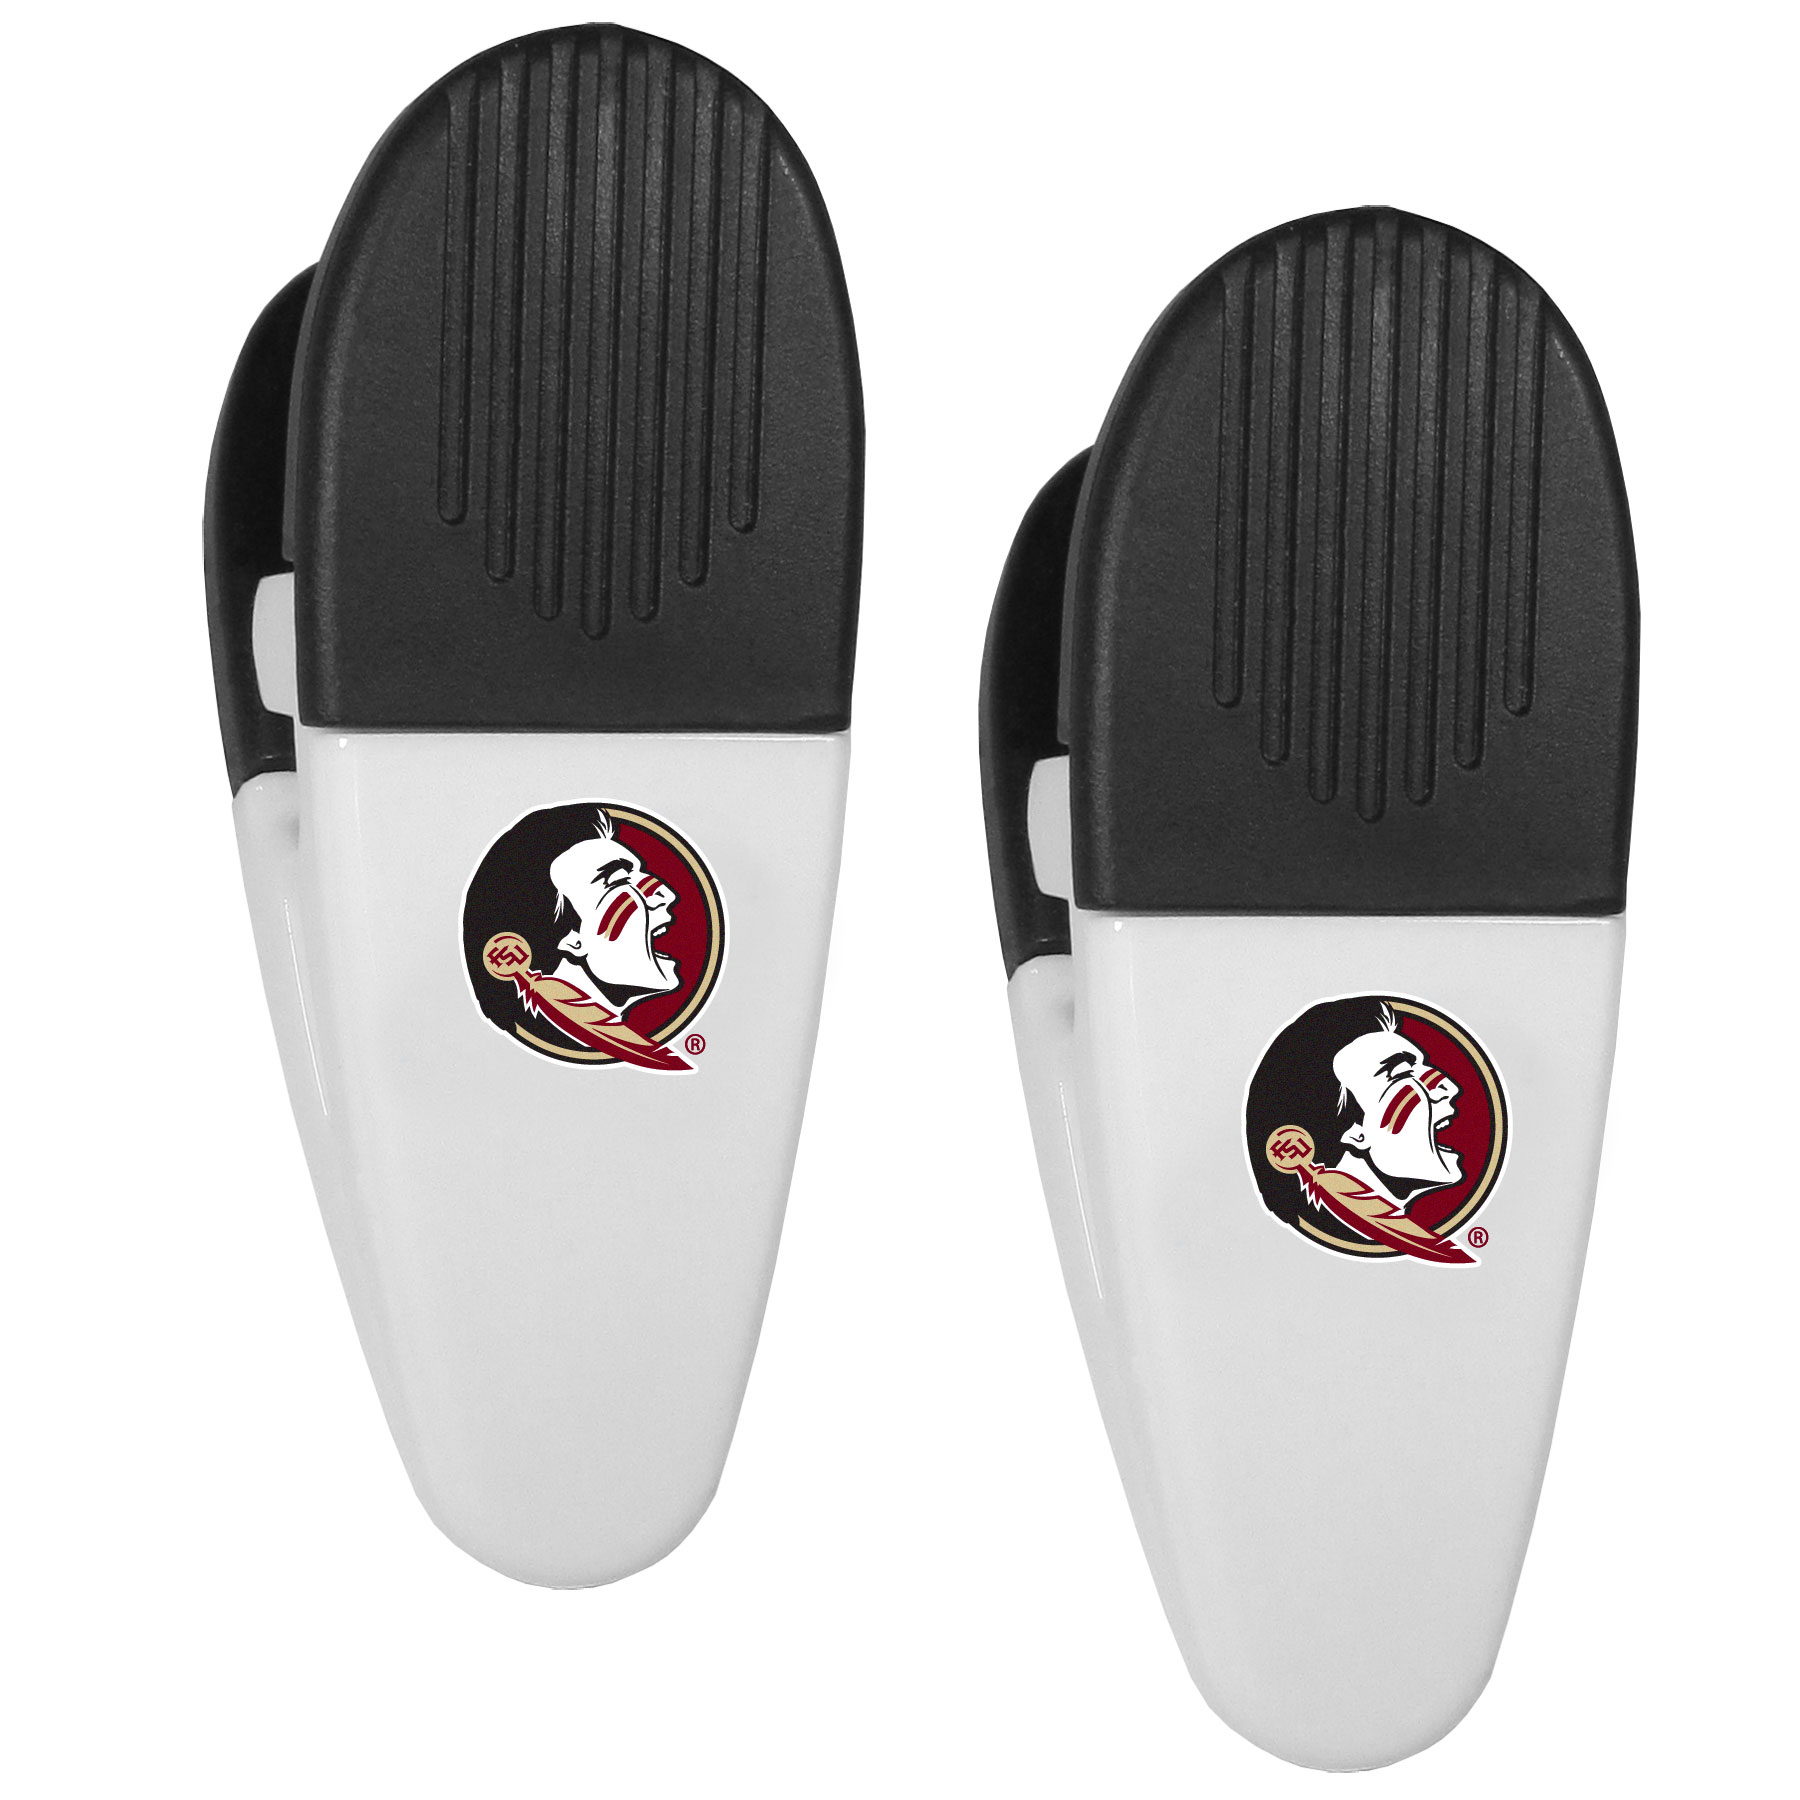 Florida St. Seminoles Mini Chip Clip Magnets, 2 pk - Our Florida St. Seminoles chip clip magnets feature a crisp team logo on the front of the clip. The clip is perfect for sealing chips for freshness and with the powerful magnet on the back it can be used to attach notes to the fridge or hanging your child's artwork. Set of 2 magnet clips, each clip is 3.5 inches tall and 1.25 inch wide.